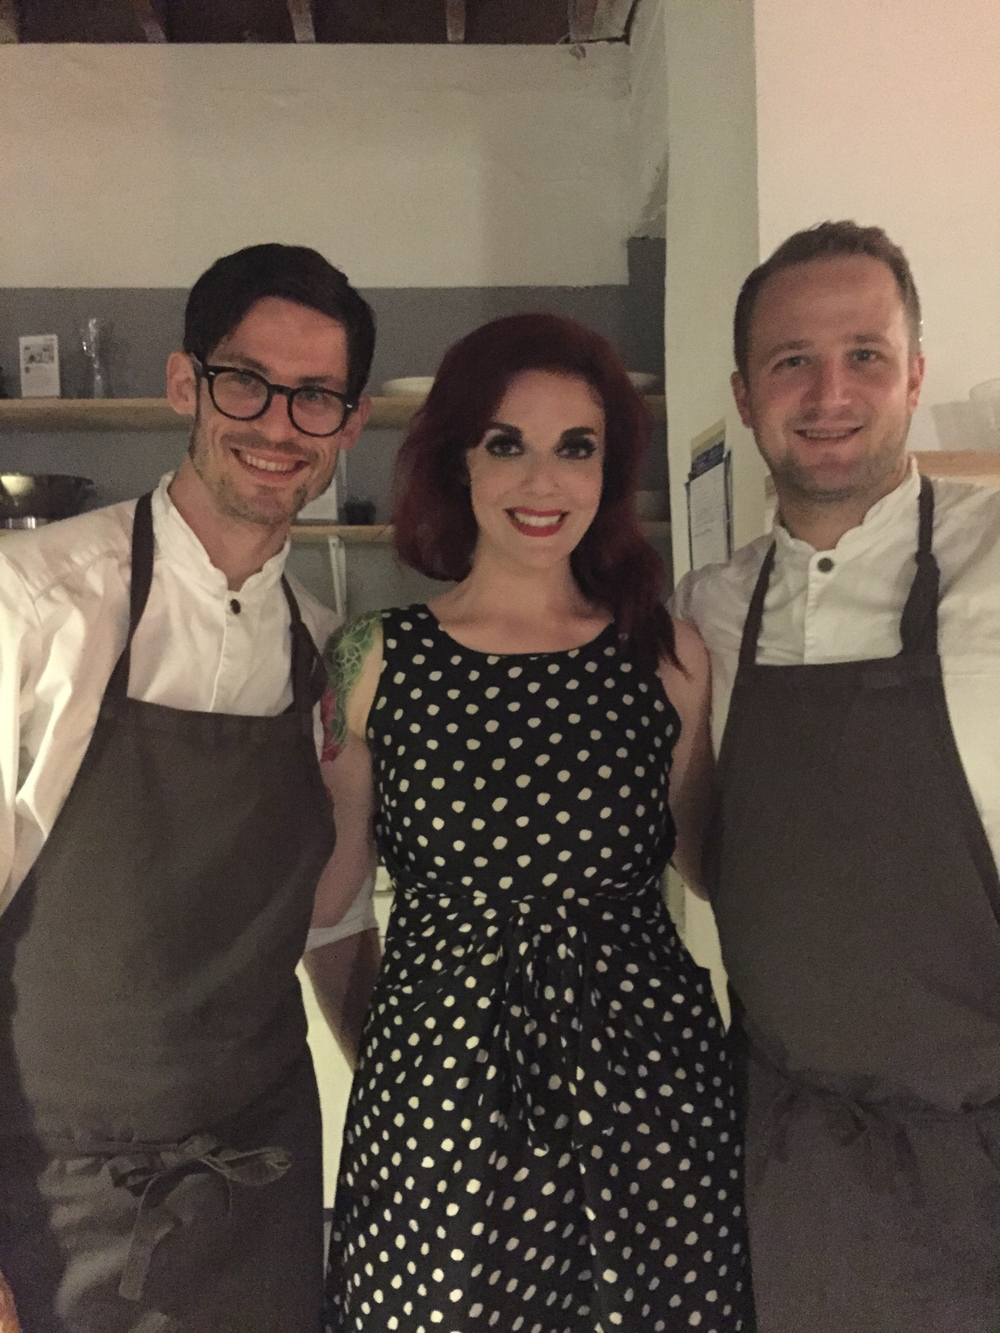 With the wonderful   Chef Anton Bjuhr (left) and   Chef Jacob Holmström (right)!